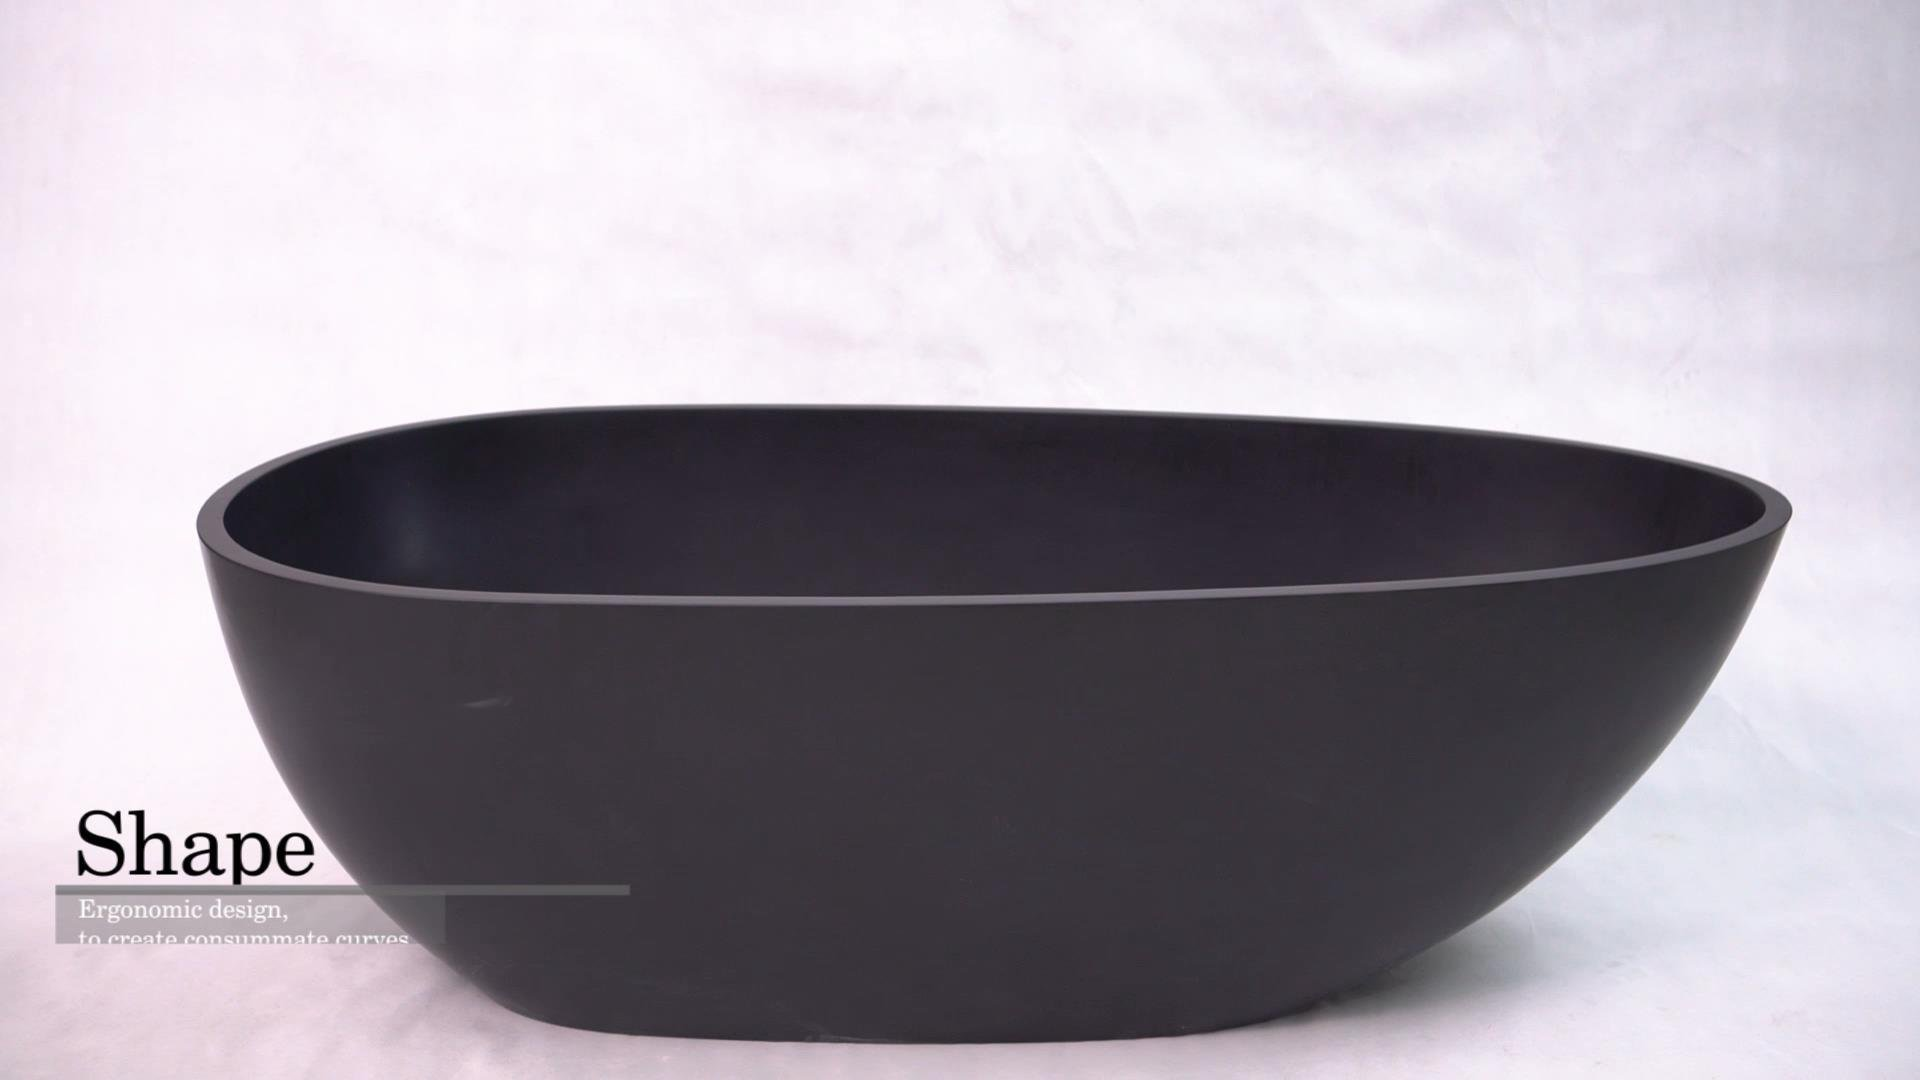 Egg oval shaped black color freestanding solid surface stone cast acrylic resin bathroom bathtub BS-8608B product presentation